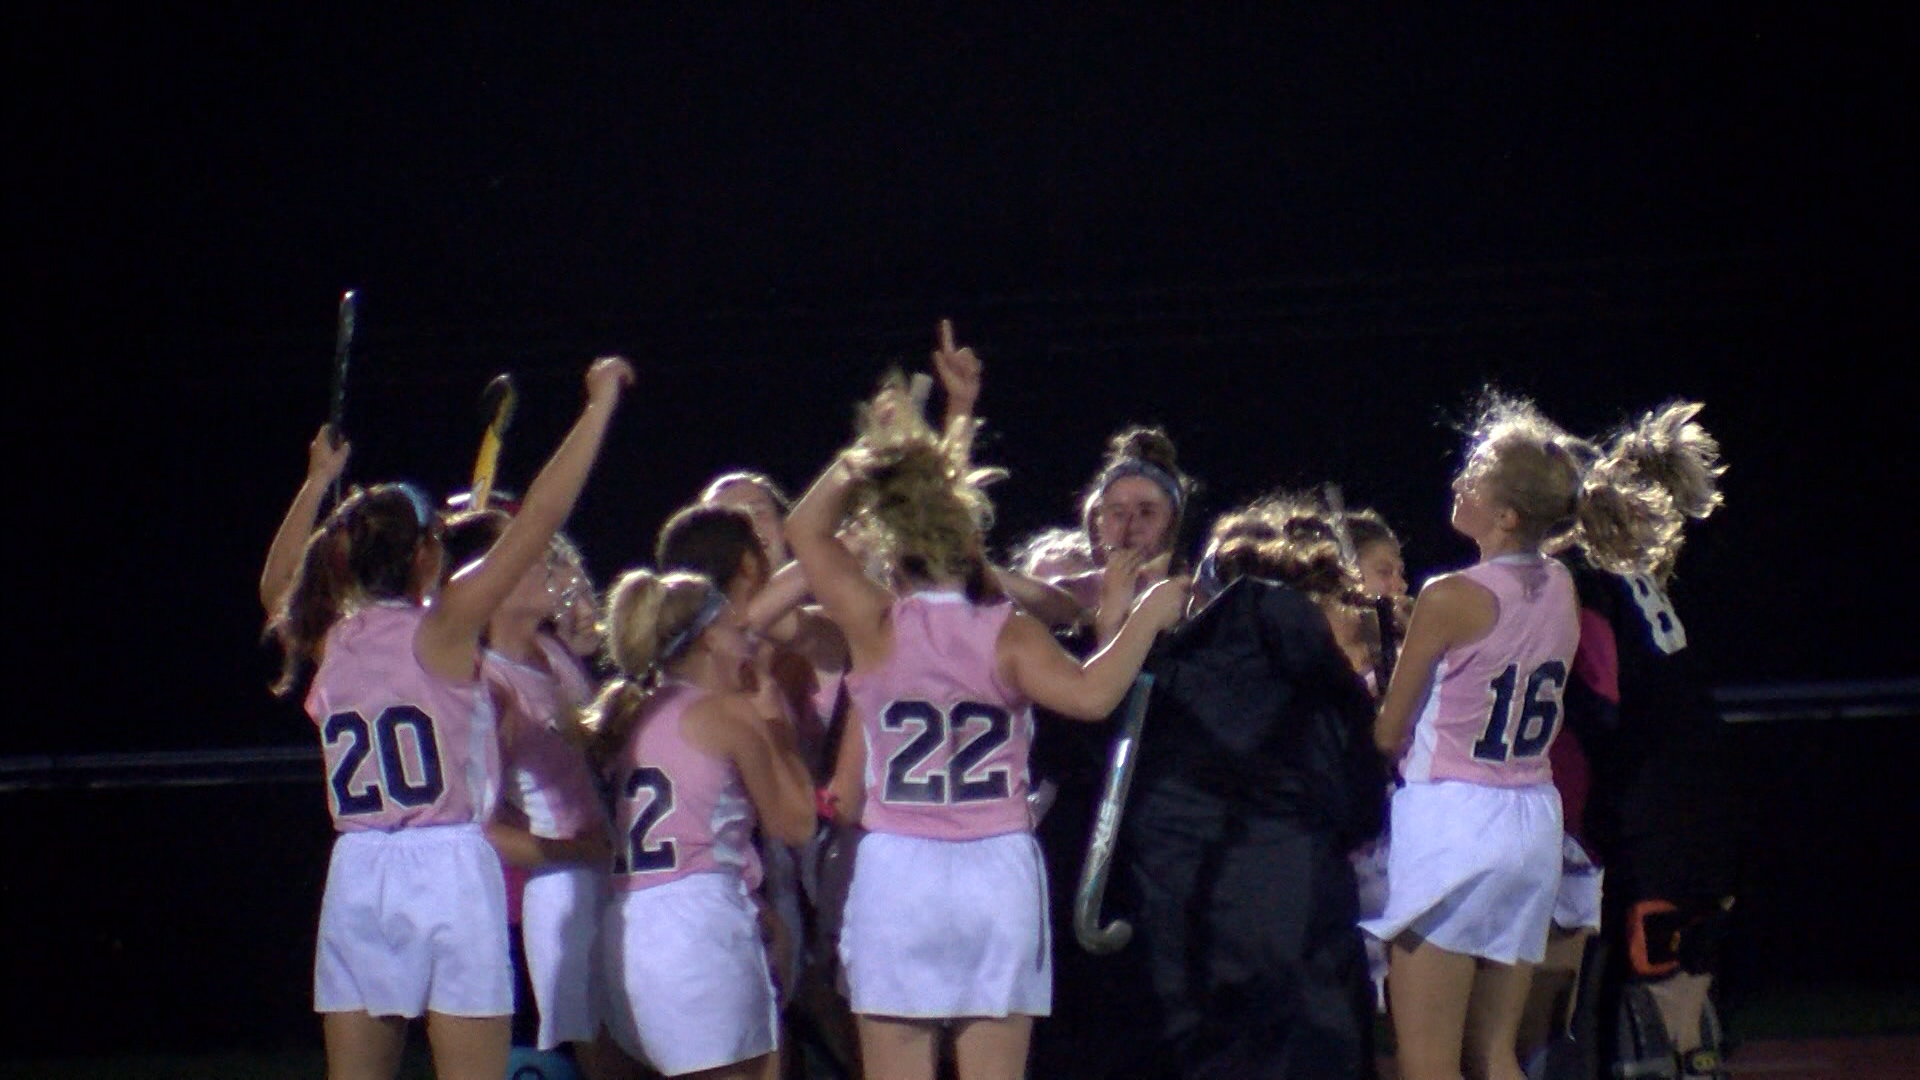 Sutherland takes down Mendon in the battle of Pittsford